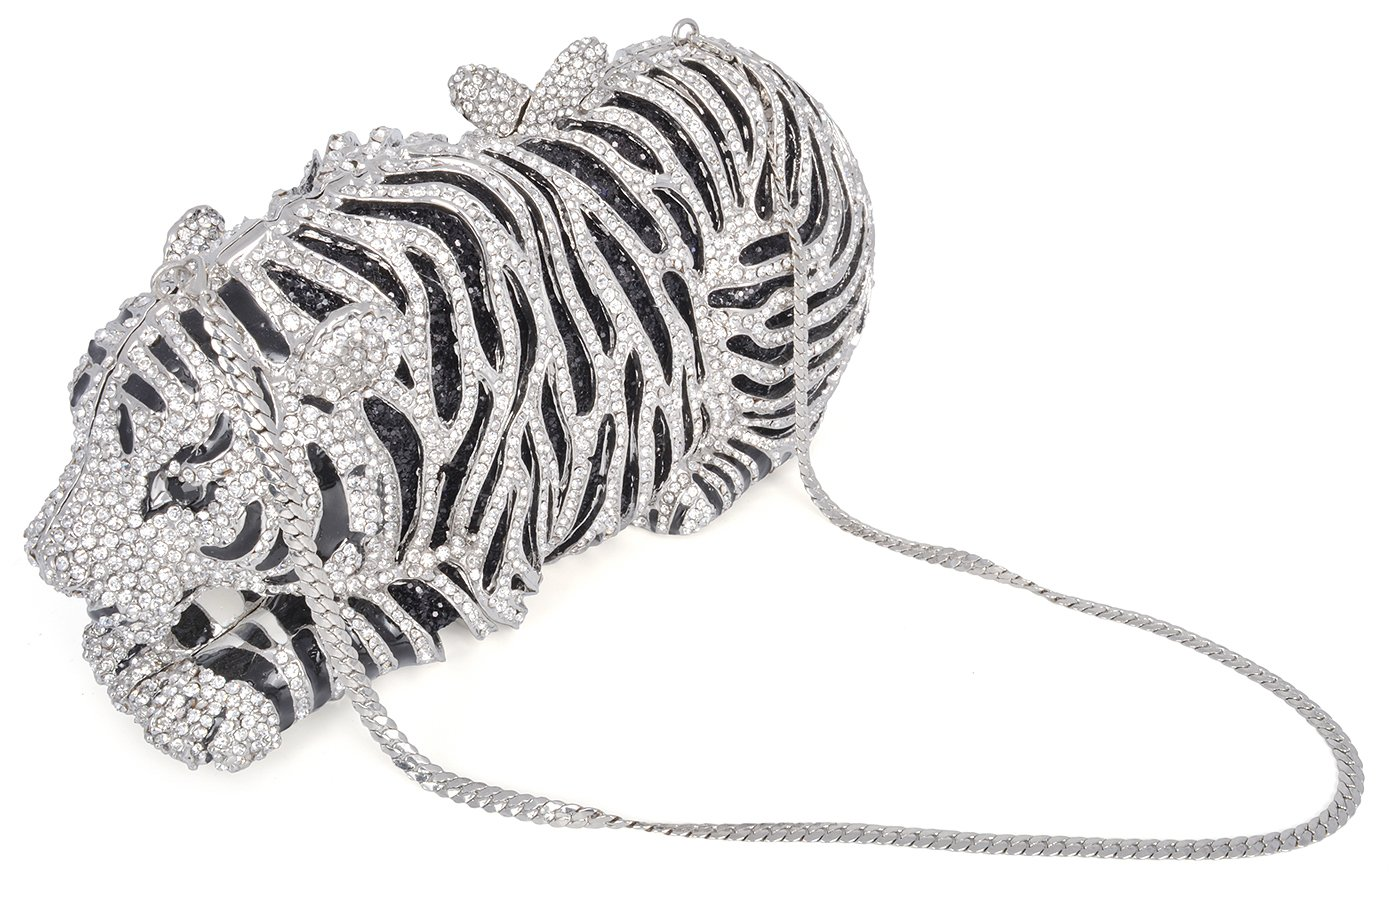 mossmon Luxury Crystal Clutches For Women Tiger Evening Bag (Silver) by Mossmon (Image #2)